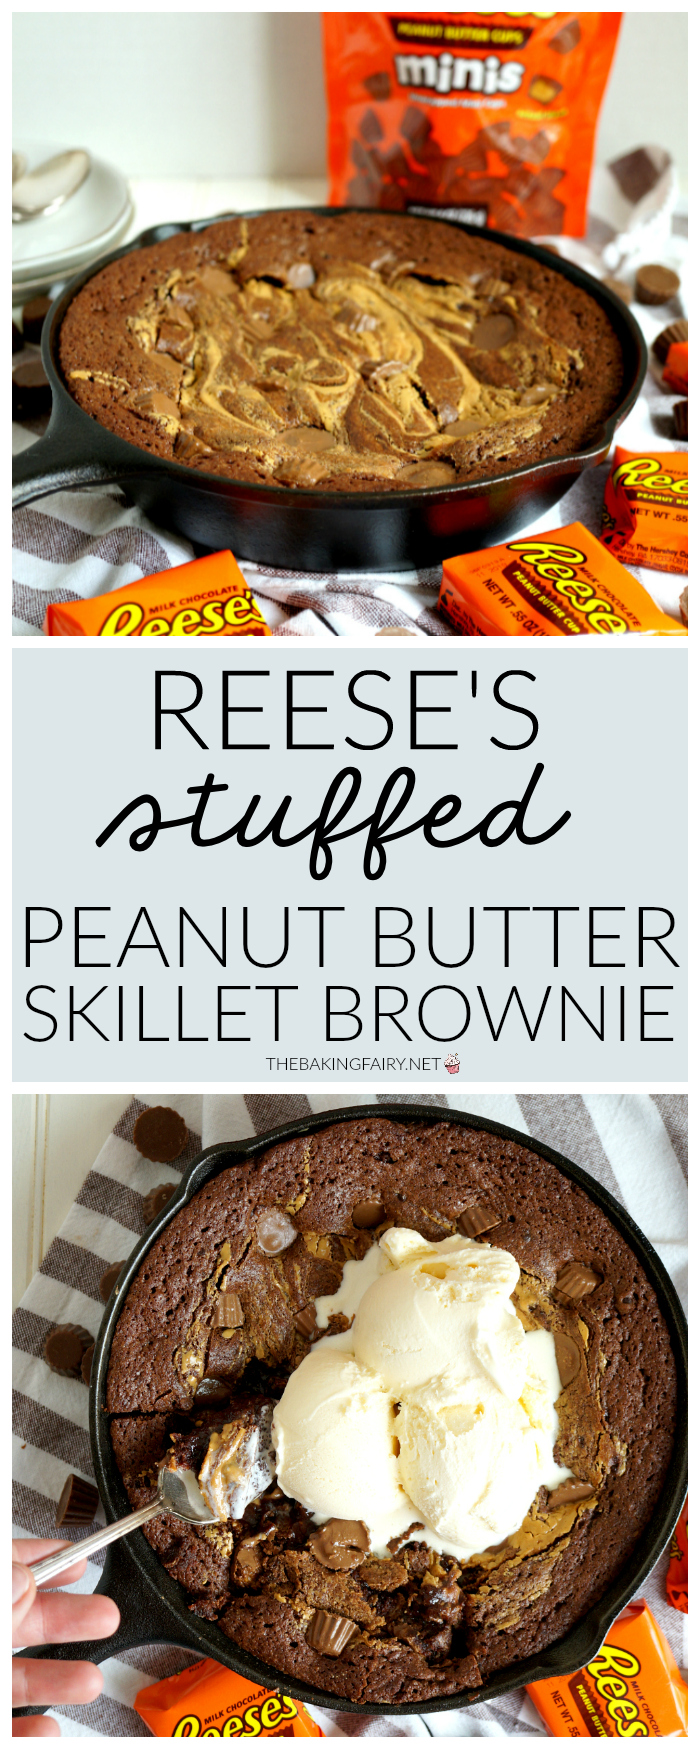 Reese's stuffed peanut butter skillet brownie   The Baking Fairy